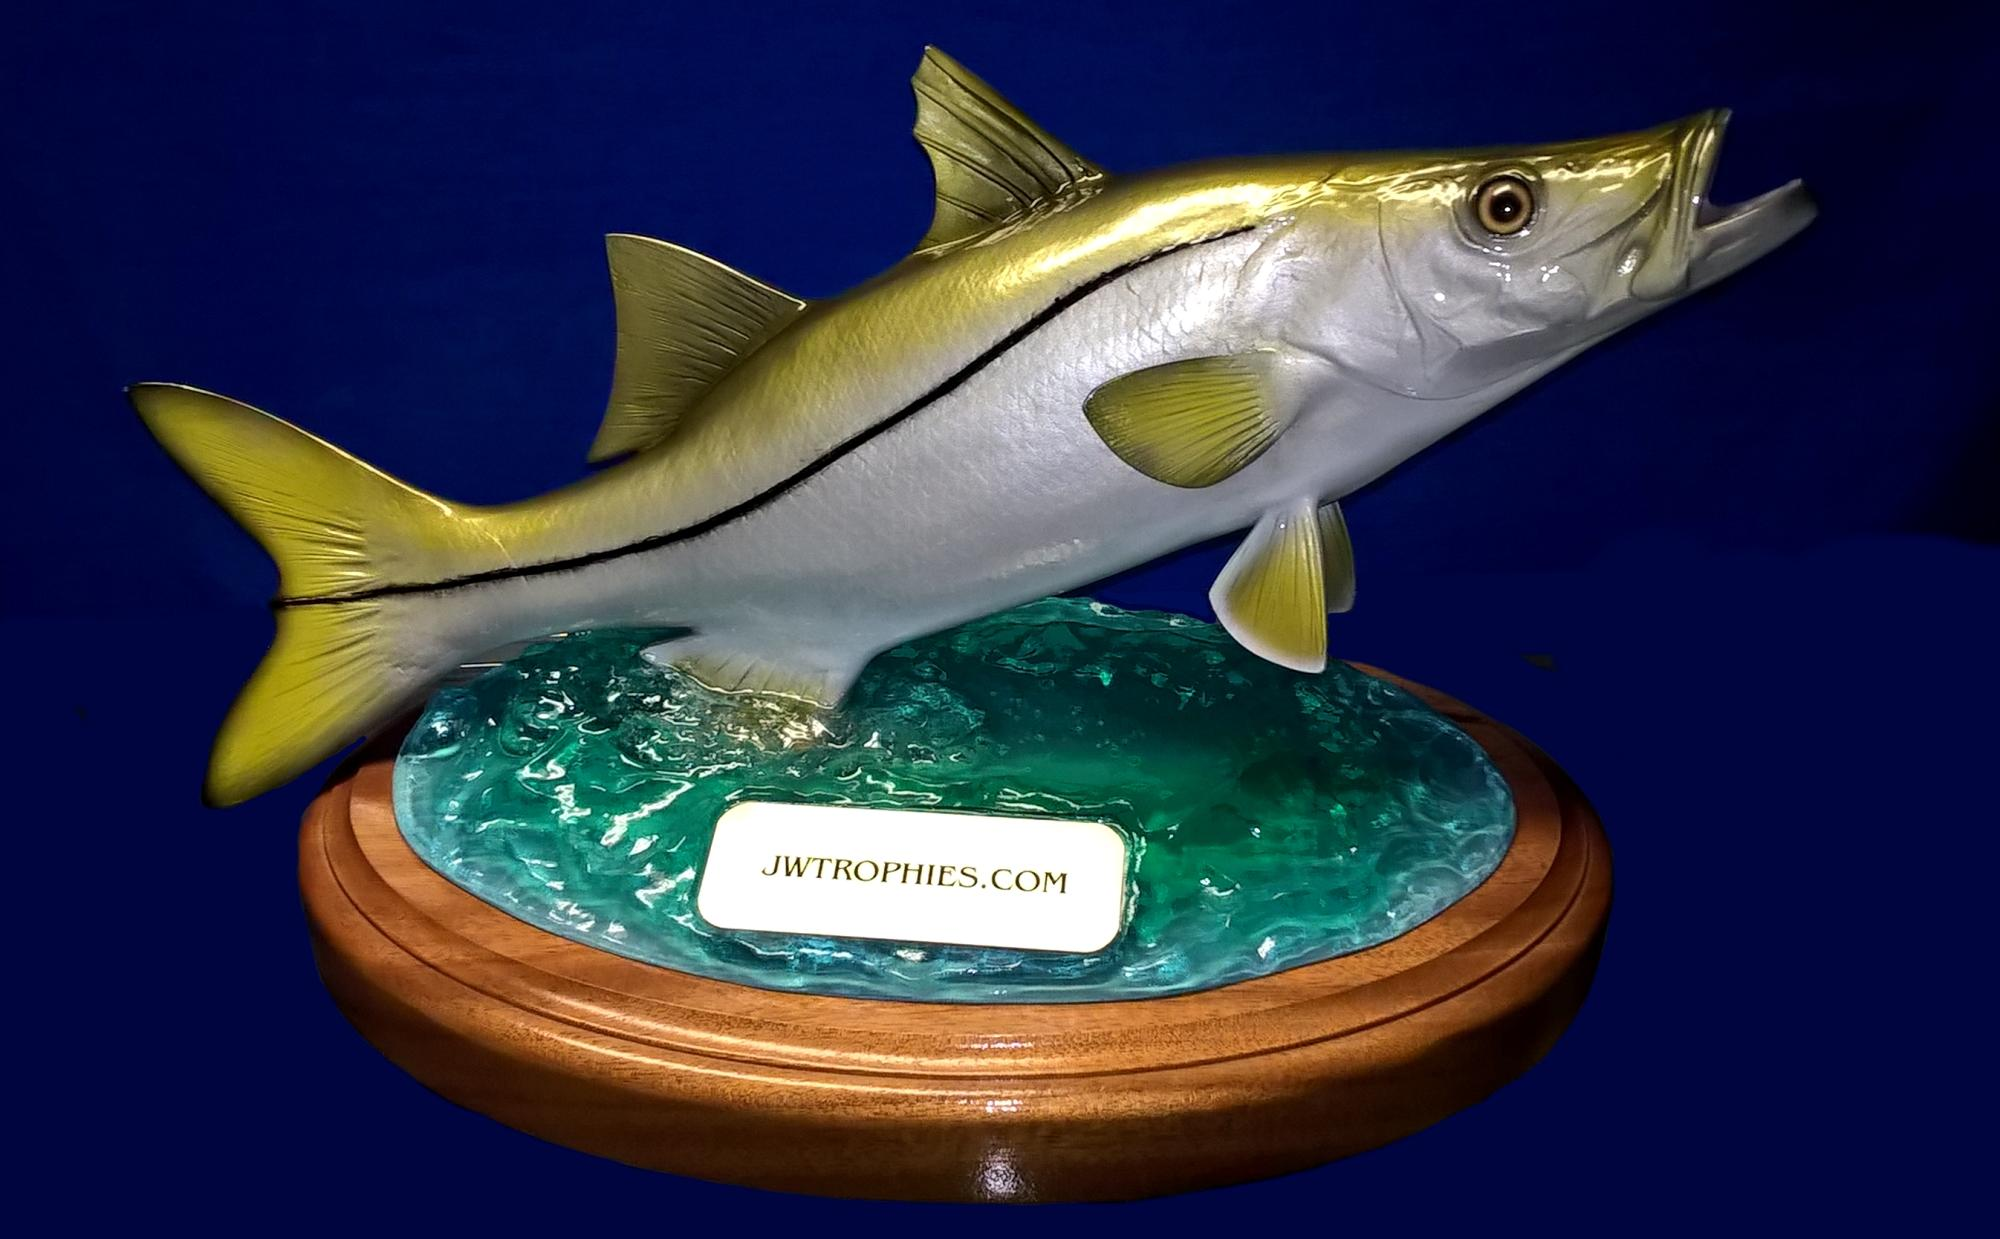 snook_trophy_2017.jpg